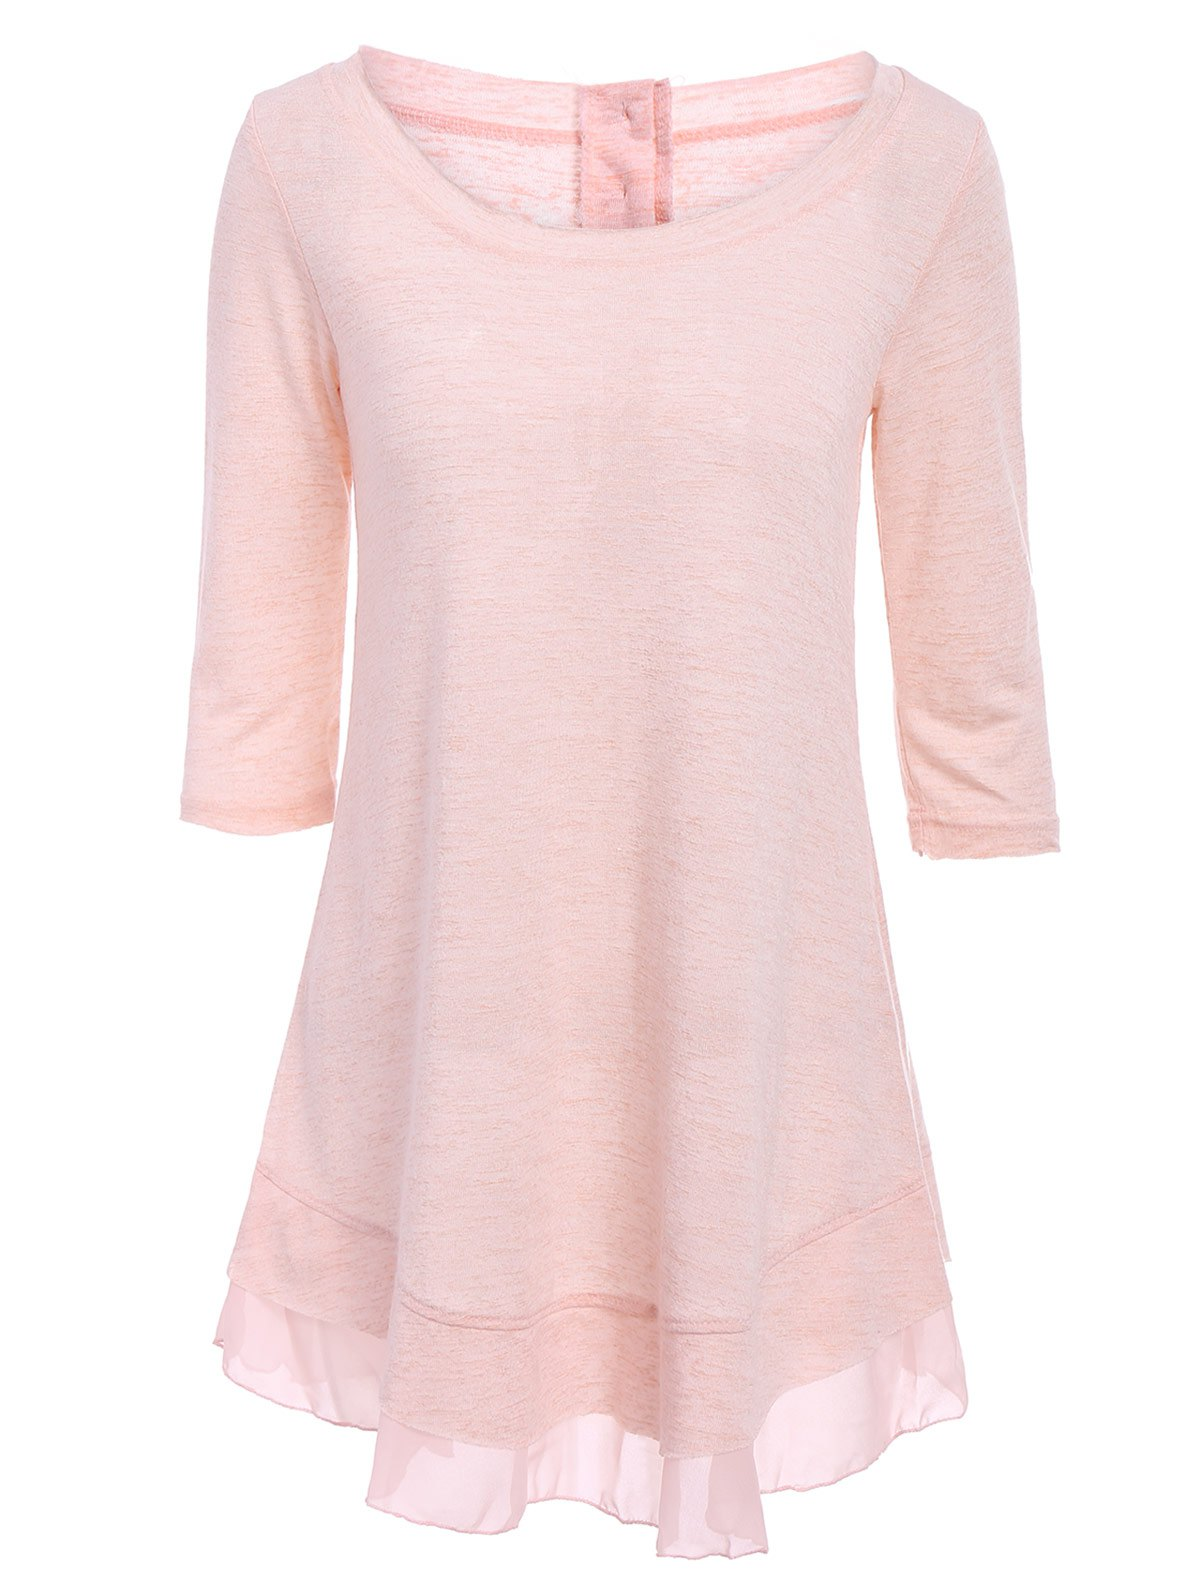 Stylish Scoop Neck Solid Color 3/4 Sleeve T-Shirt Dress For Women stylish scoop neck solid color ruched 3 4 sleeve irregular t shirt for women